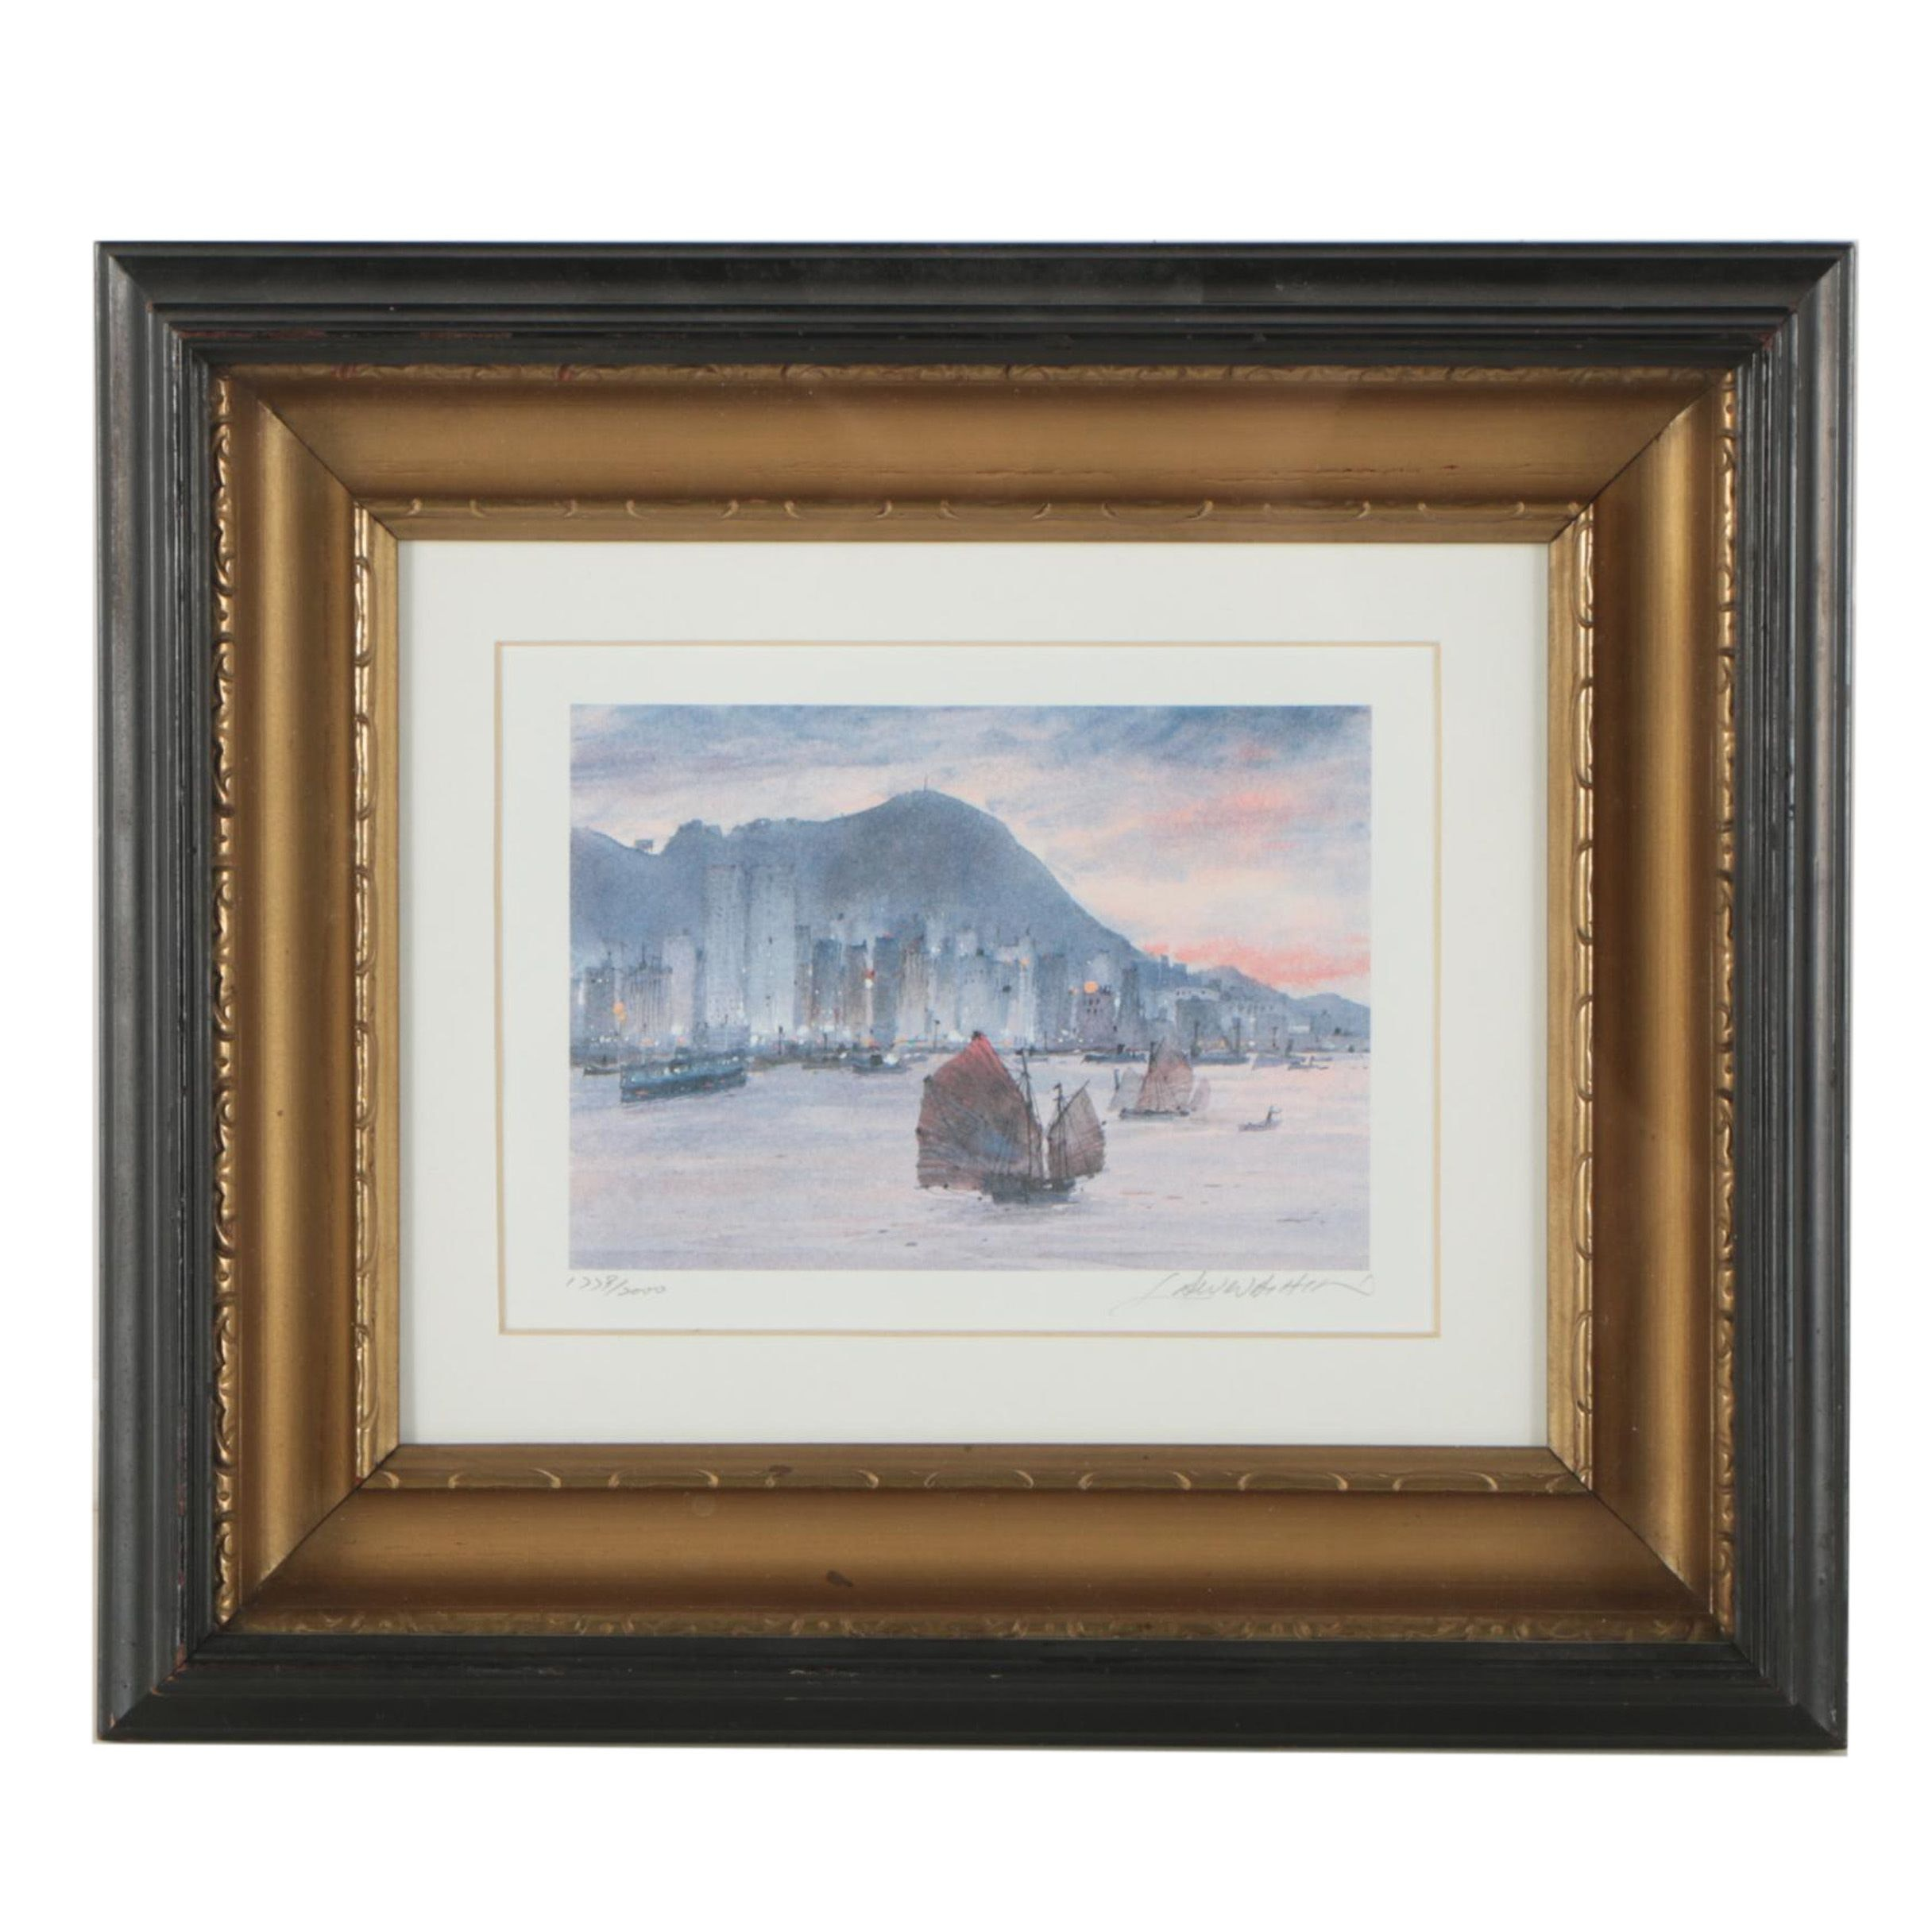 Limited Edition Offset Lithograph Print After Painting of Ships